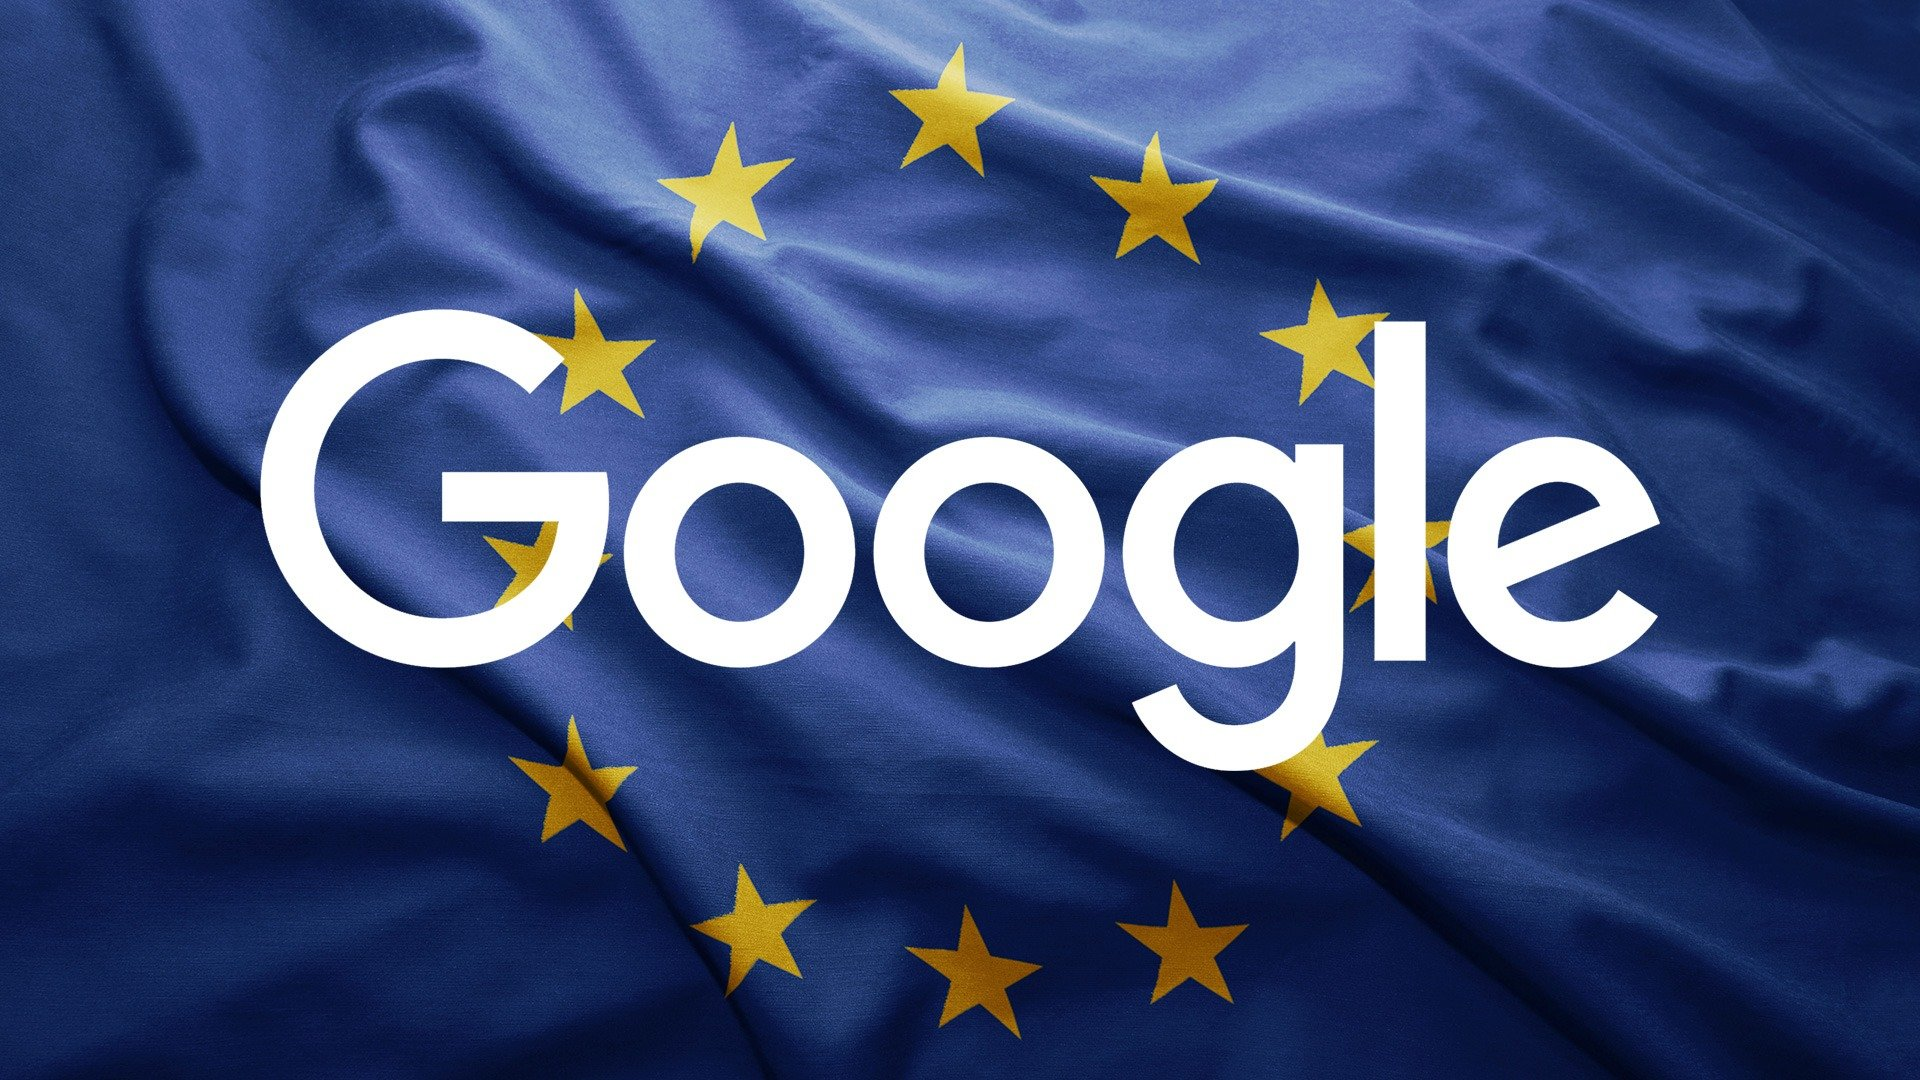 Google tightens regulations on political ads in EU